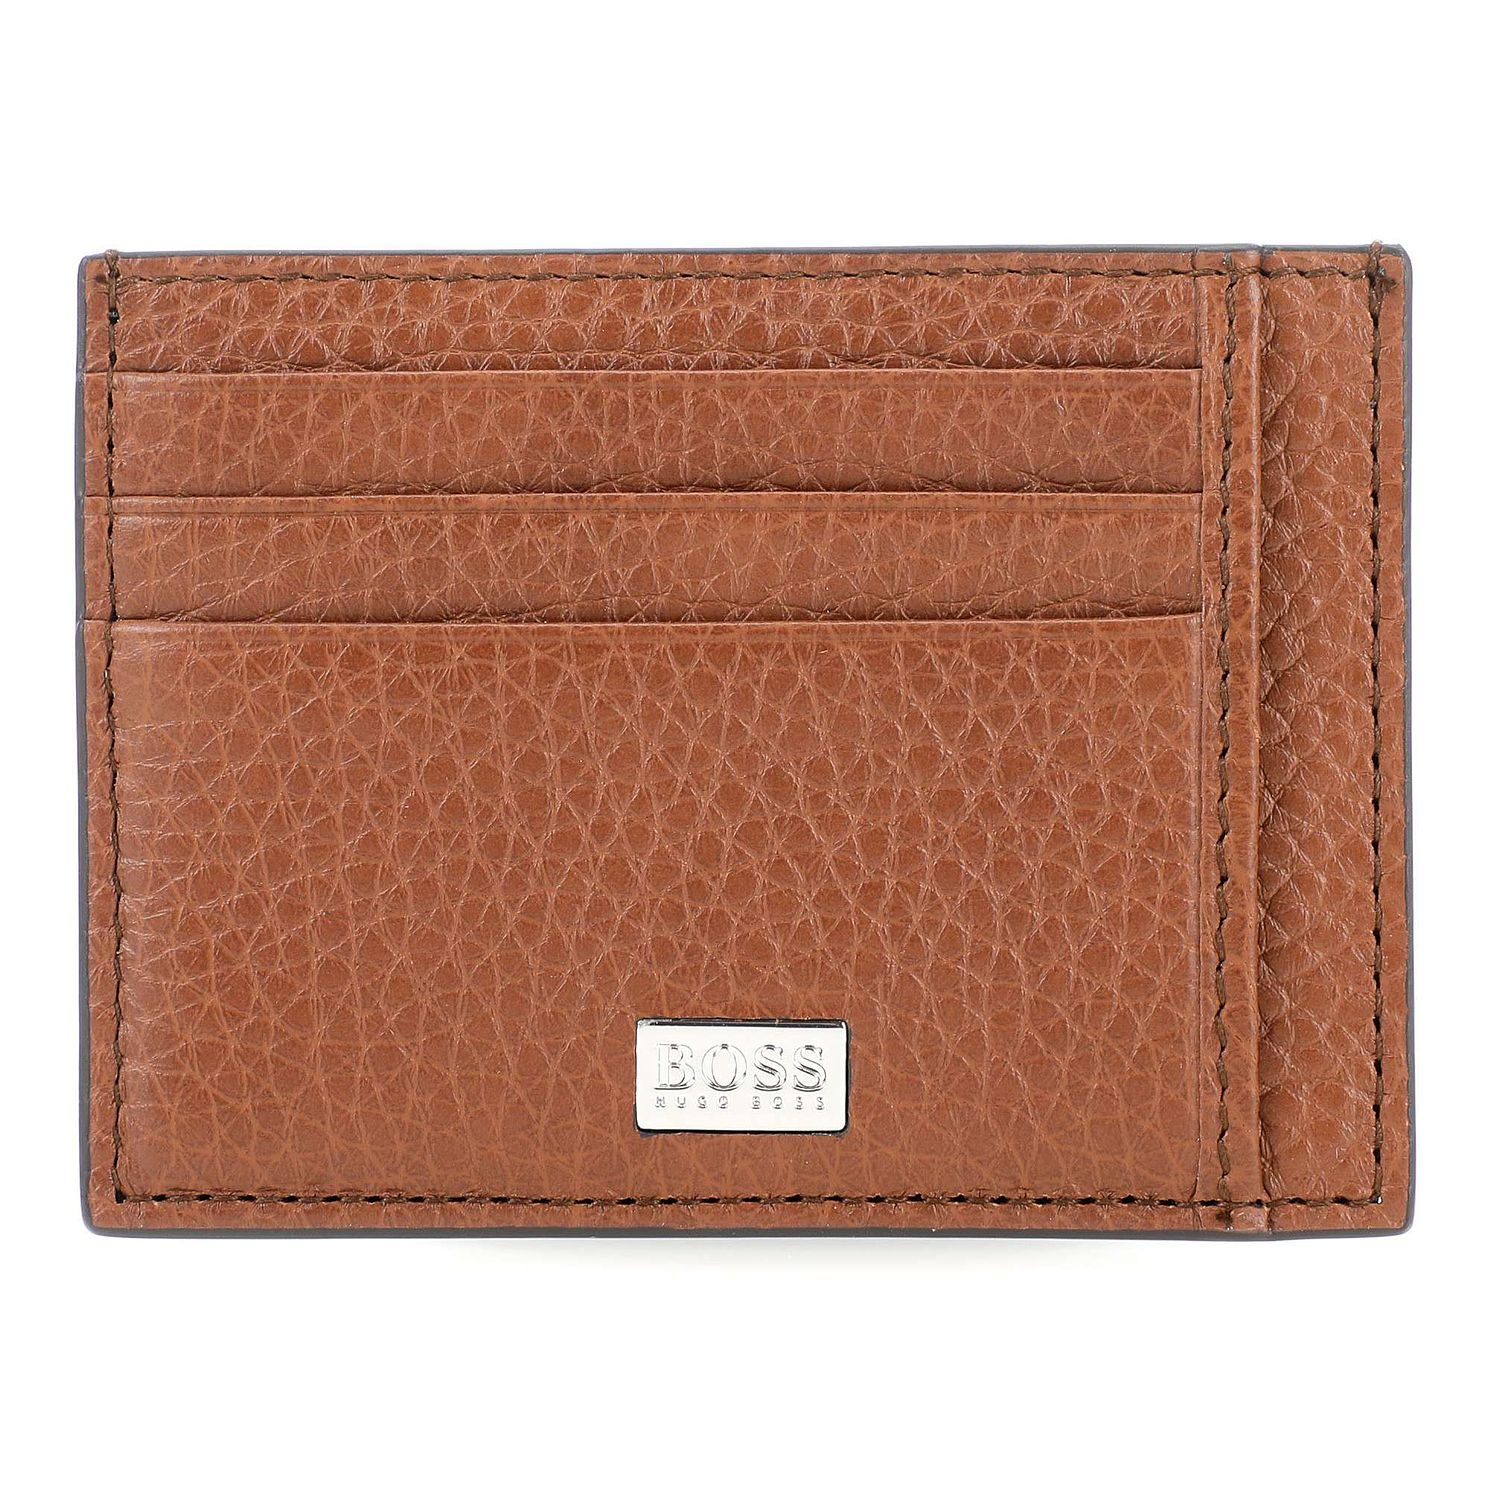 BOSS Crosstown Men's Tan Leather Cardholder - Product number 8648646